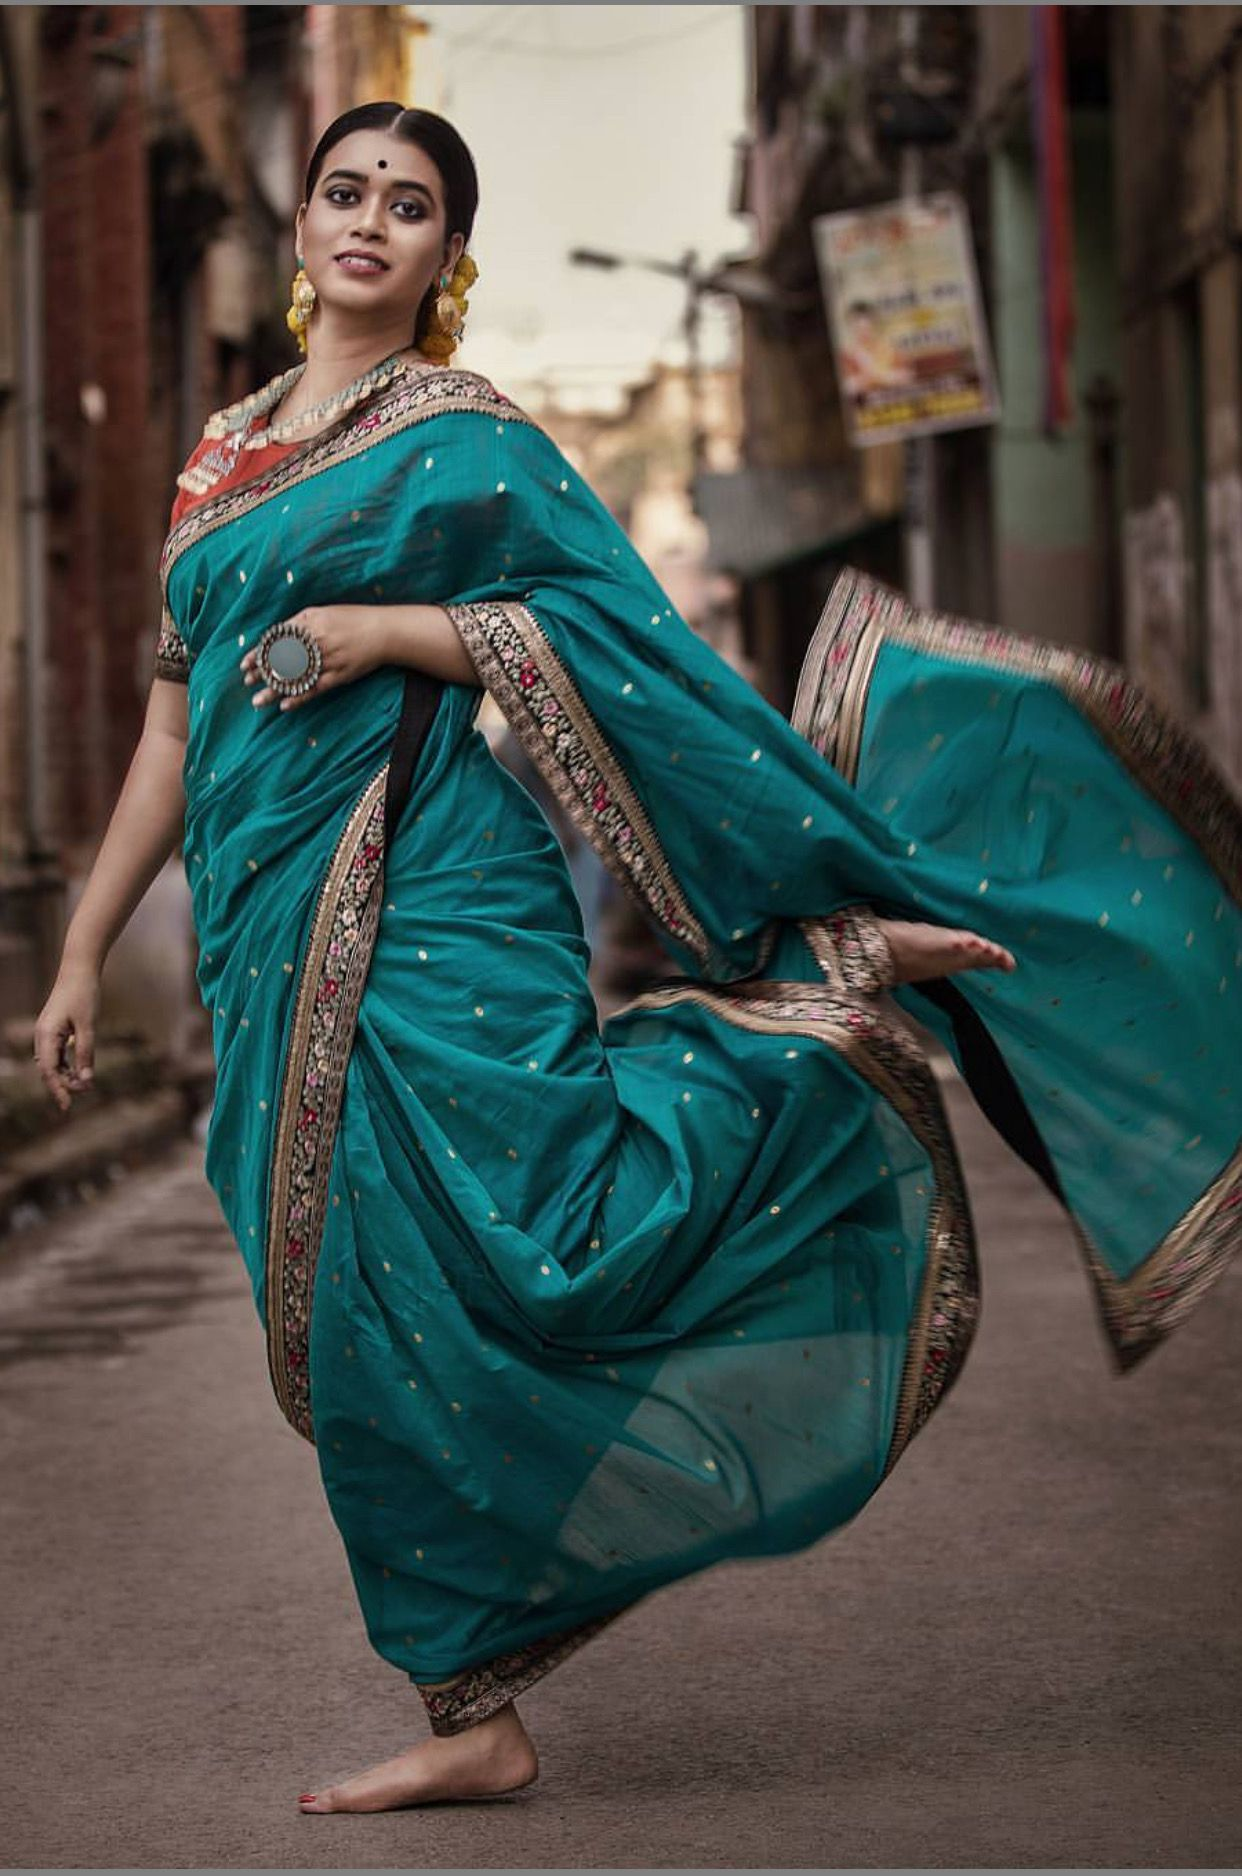 Pin by gopal schleusener on india fashion pinterest saree saris